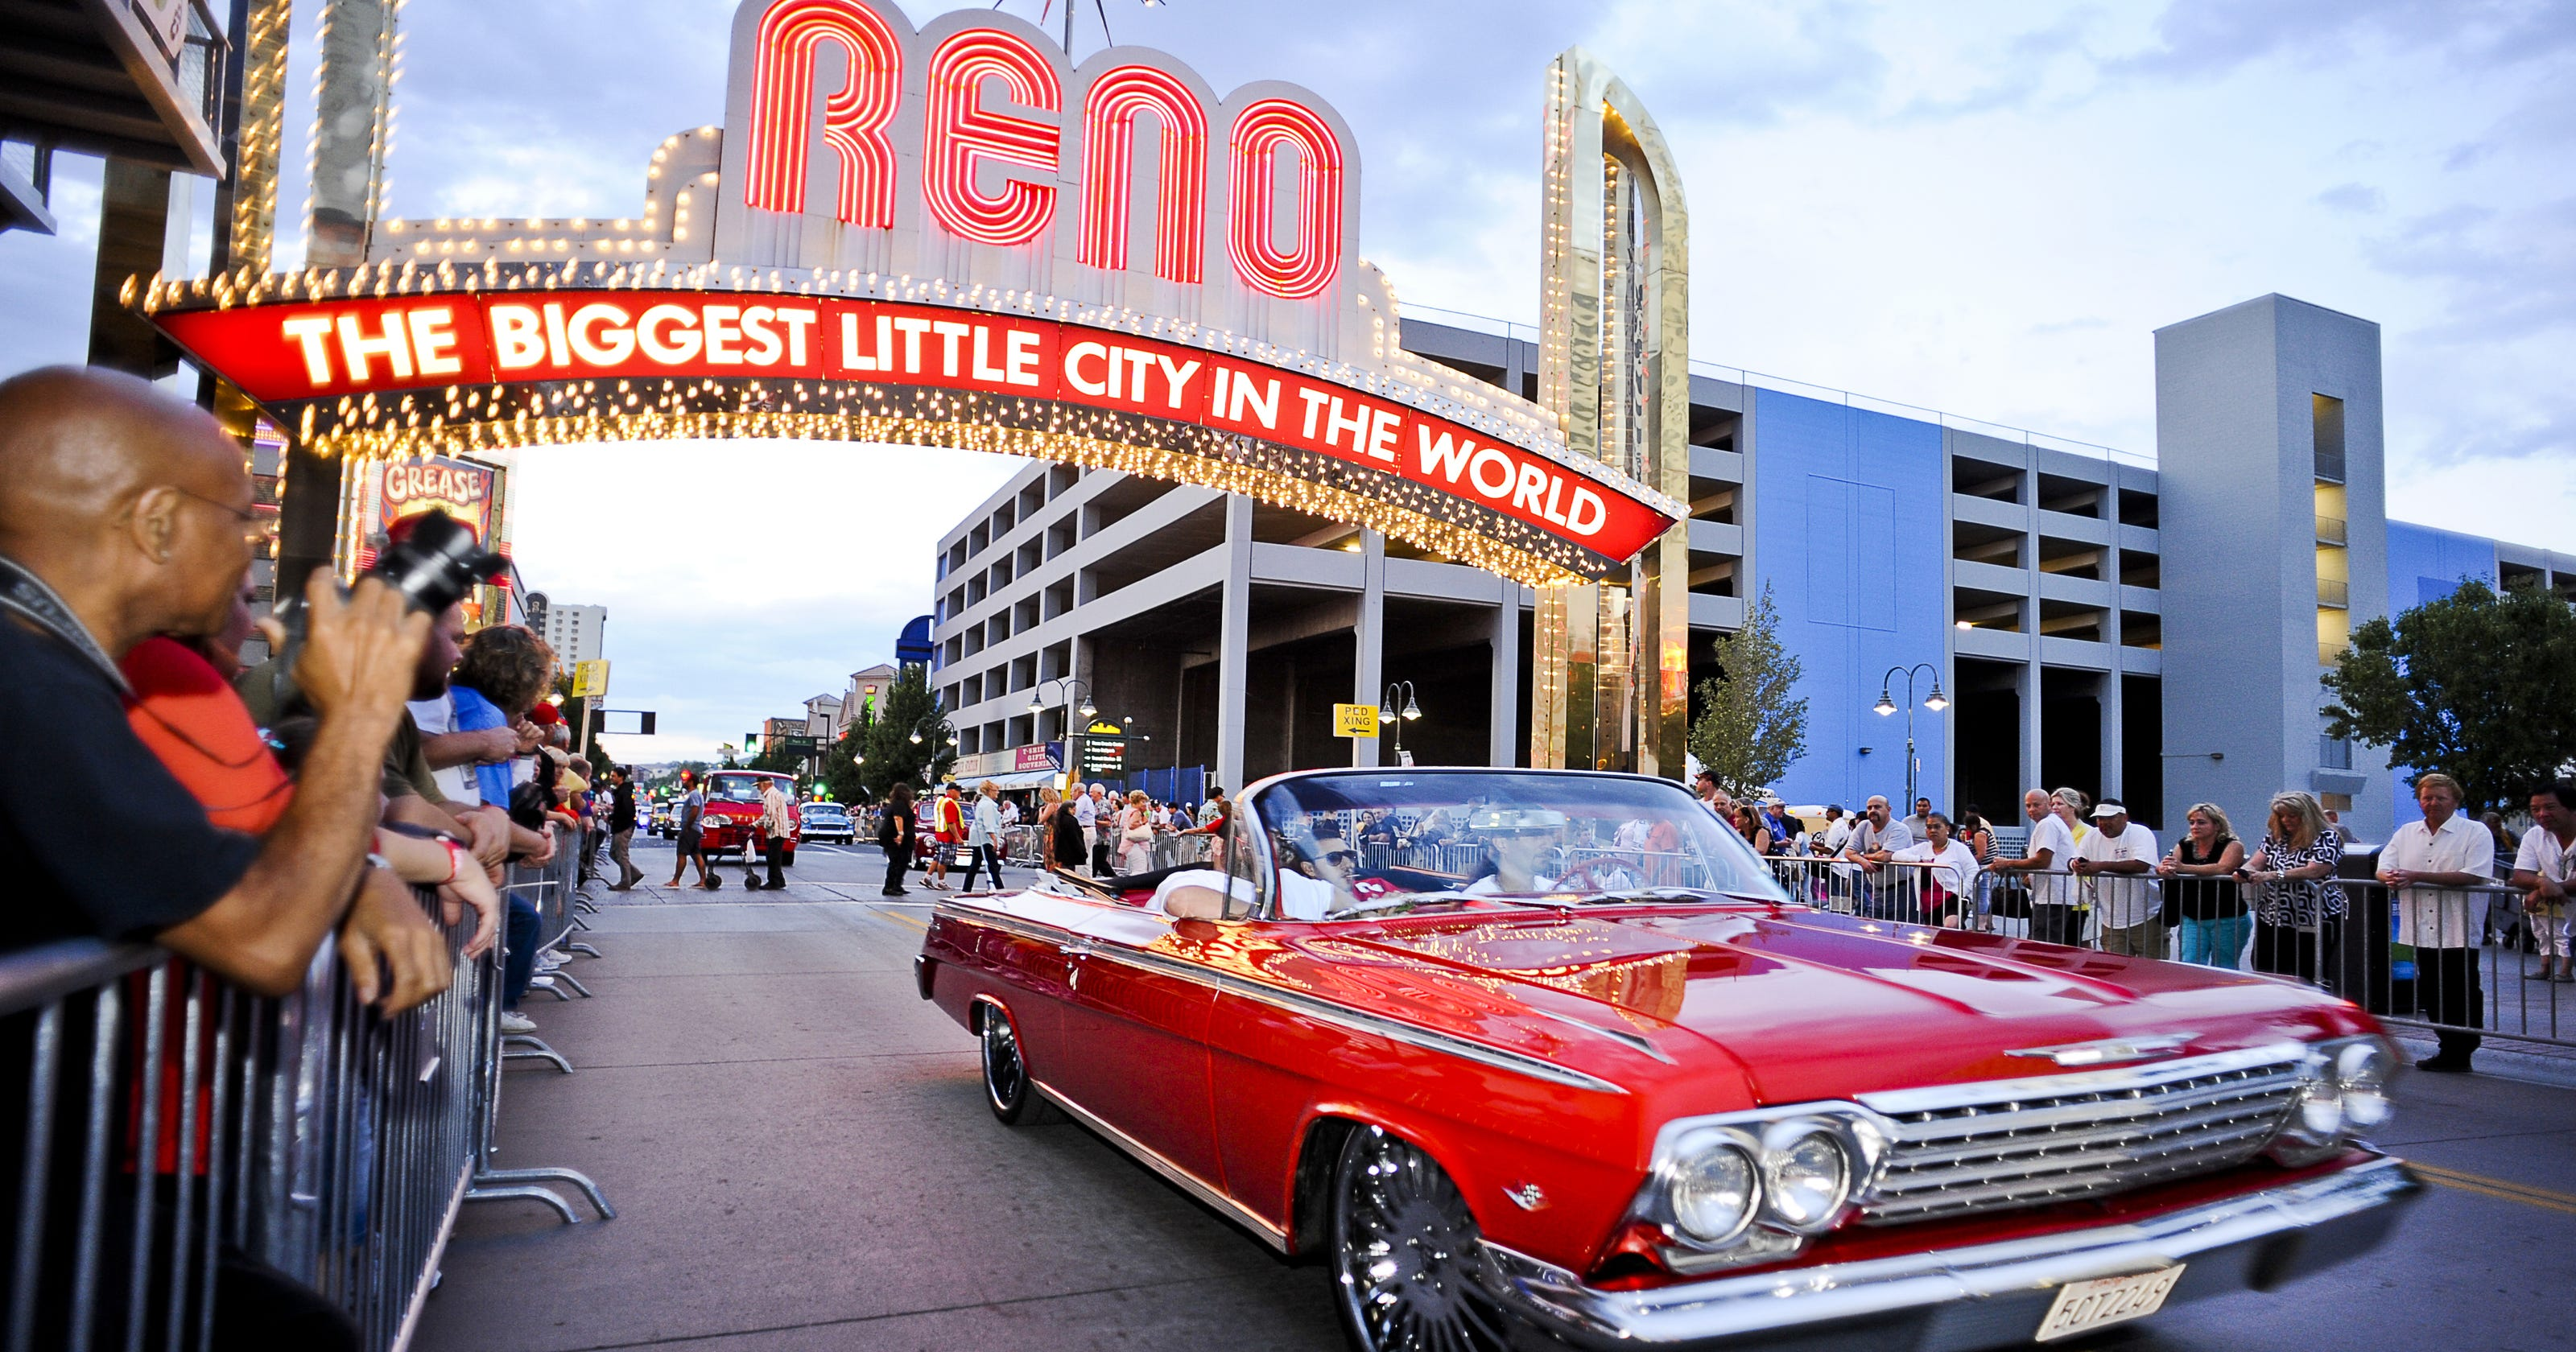 RenoTahoes Top Annual Big Events And Festivals - South lake tahoe classic car show